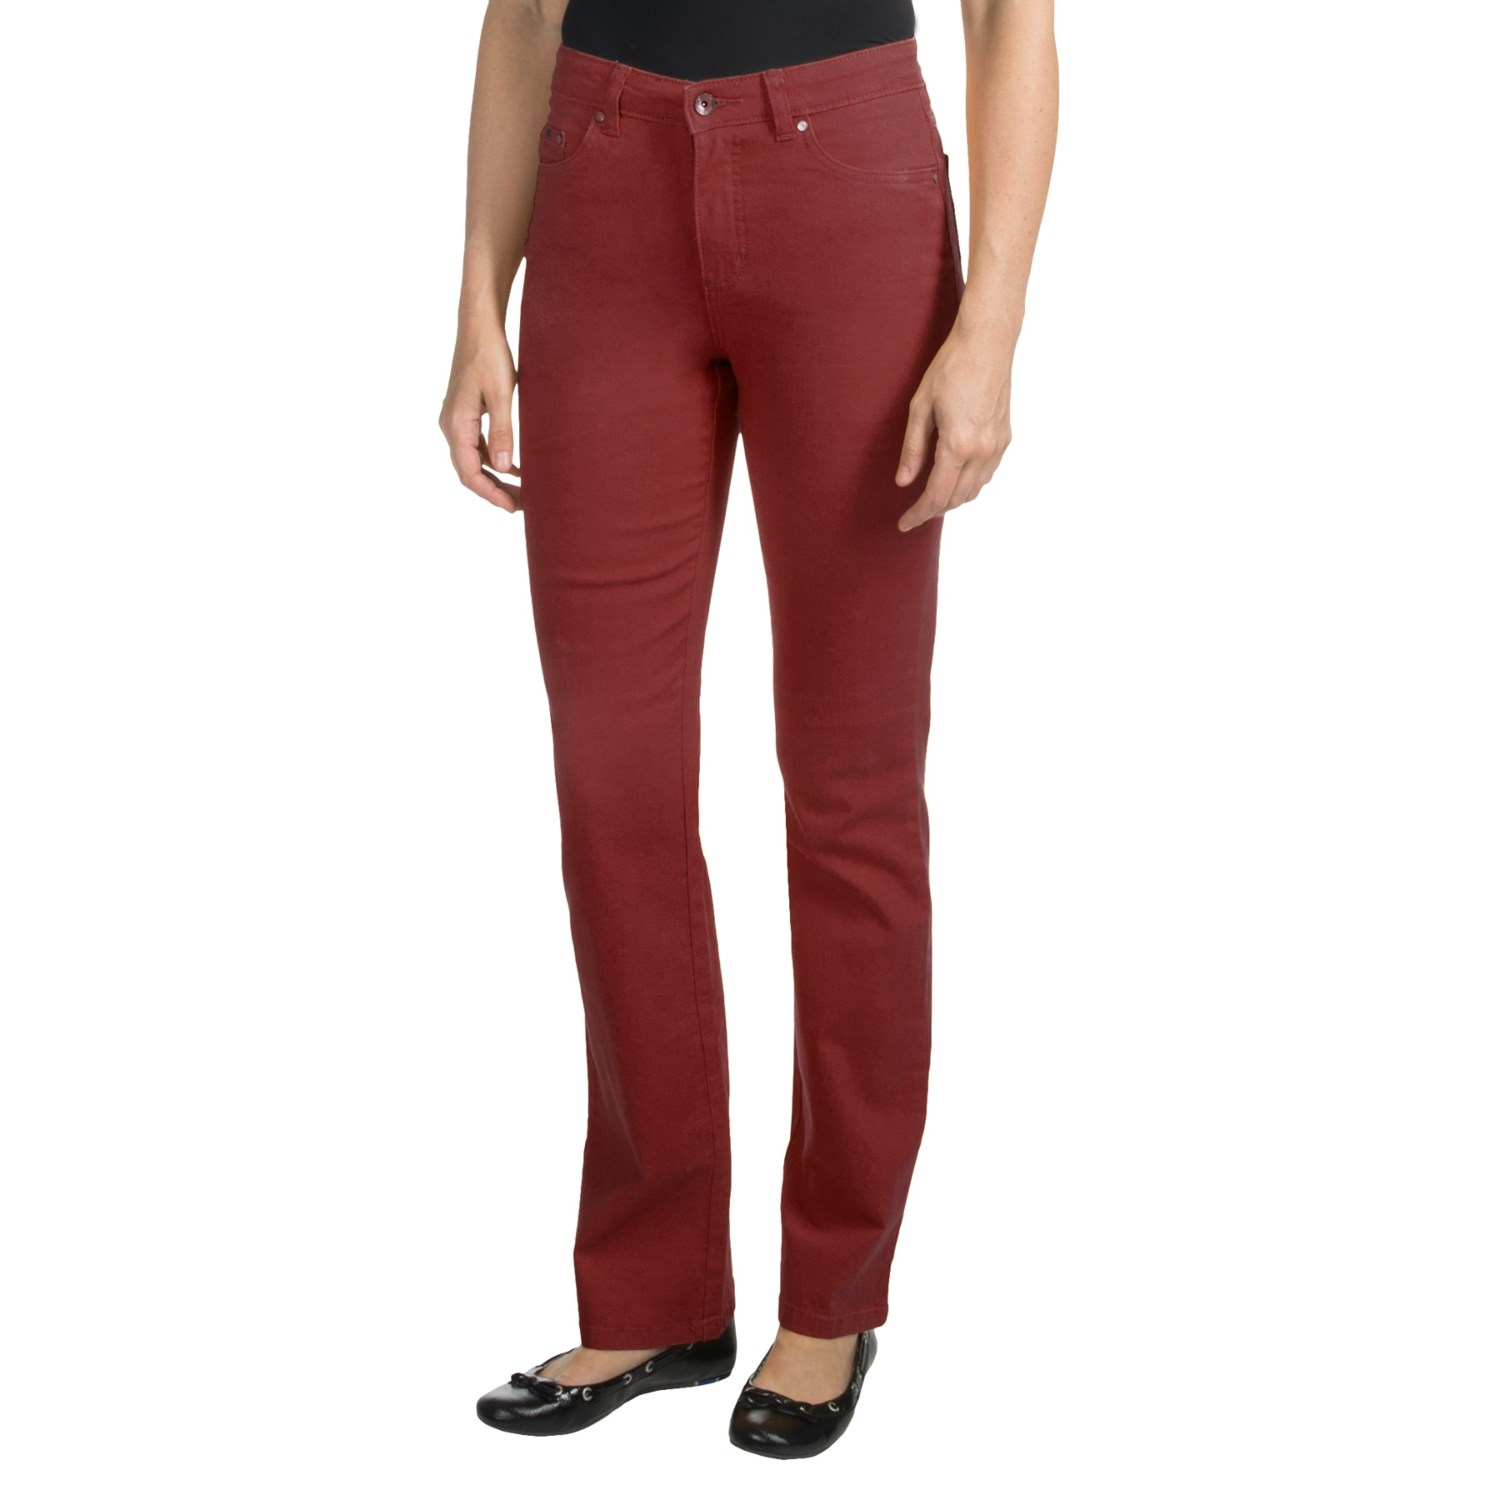 Red Bootcut Jeans For Women